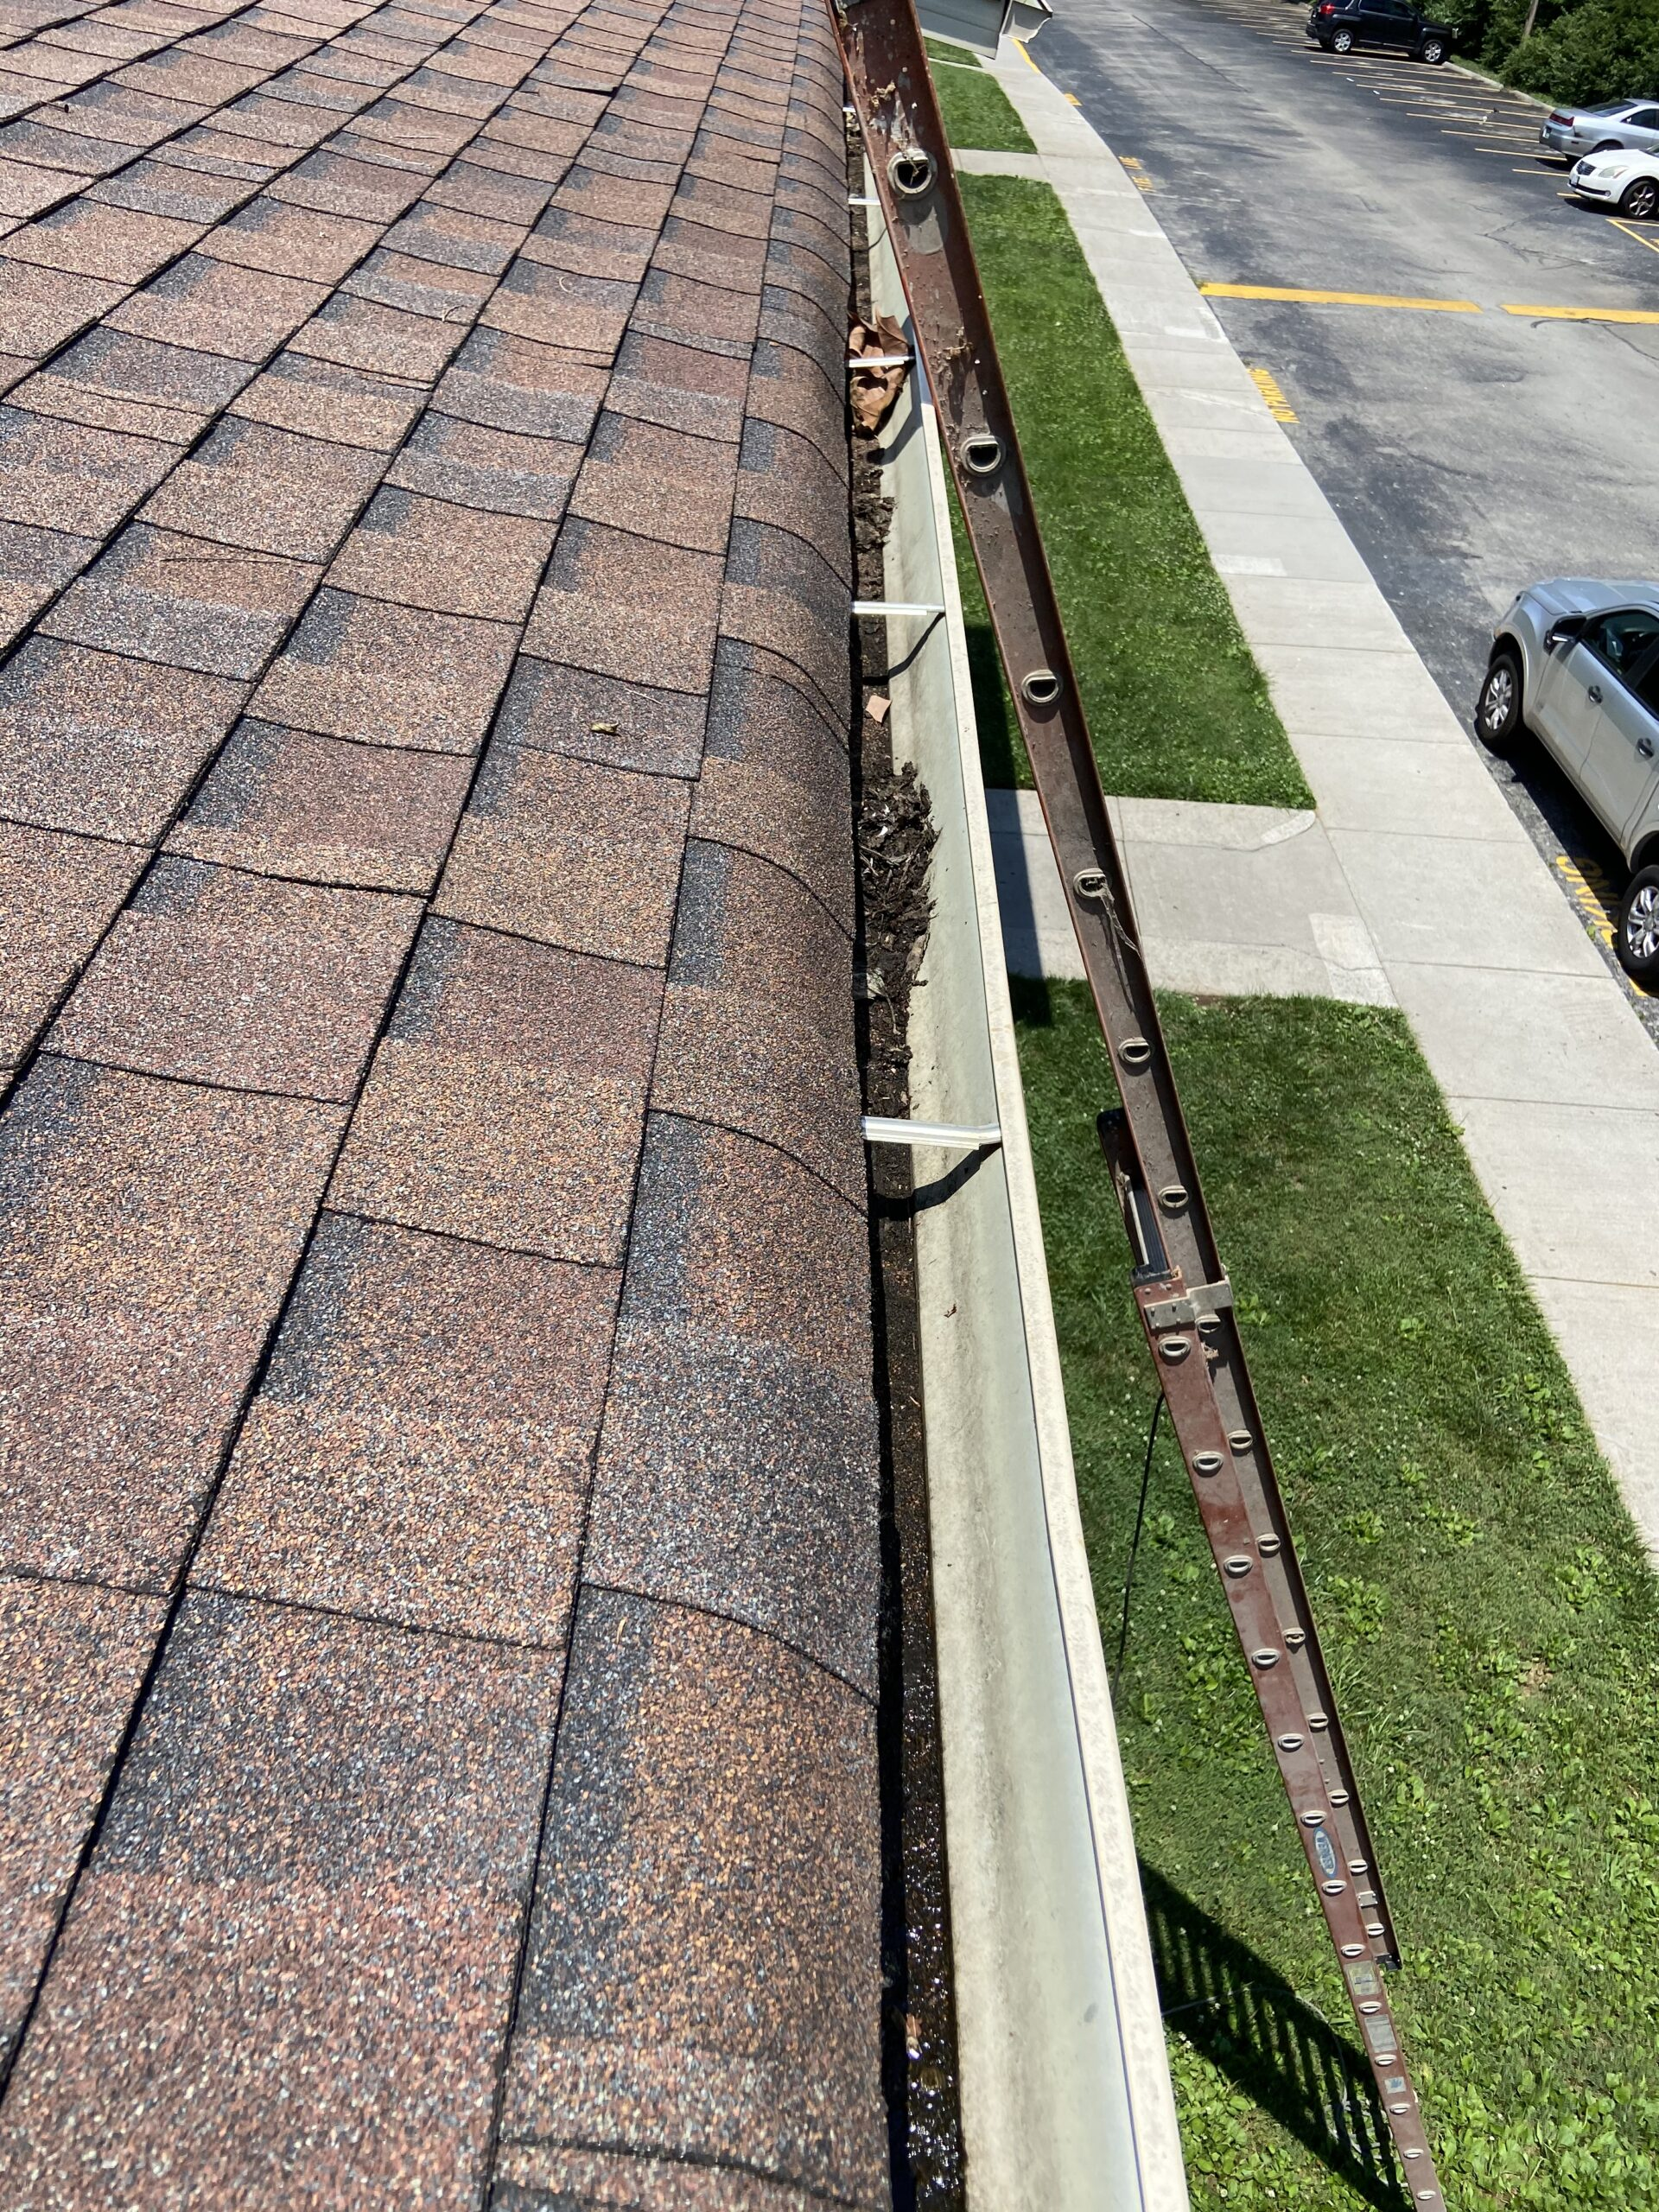 THis is a picture of gutters that have debris in them